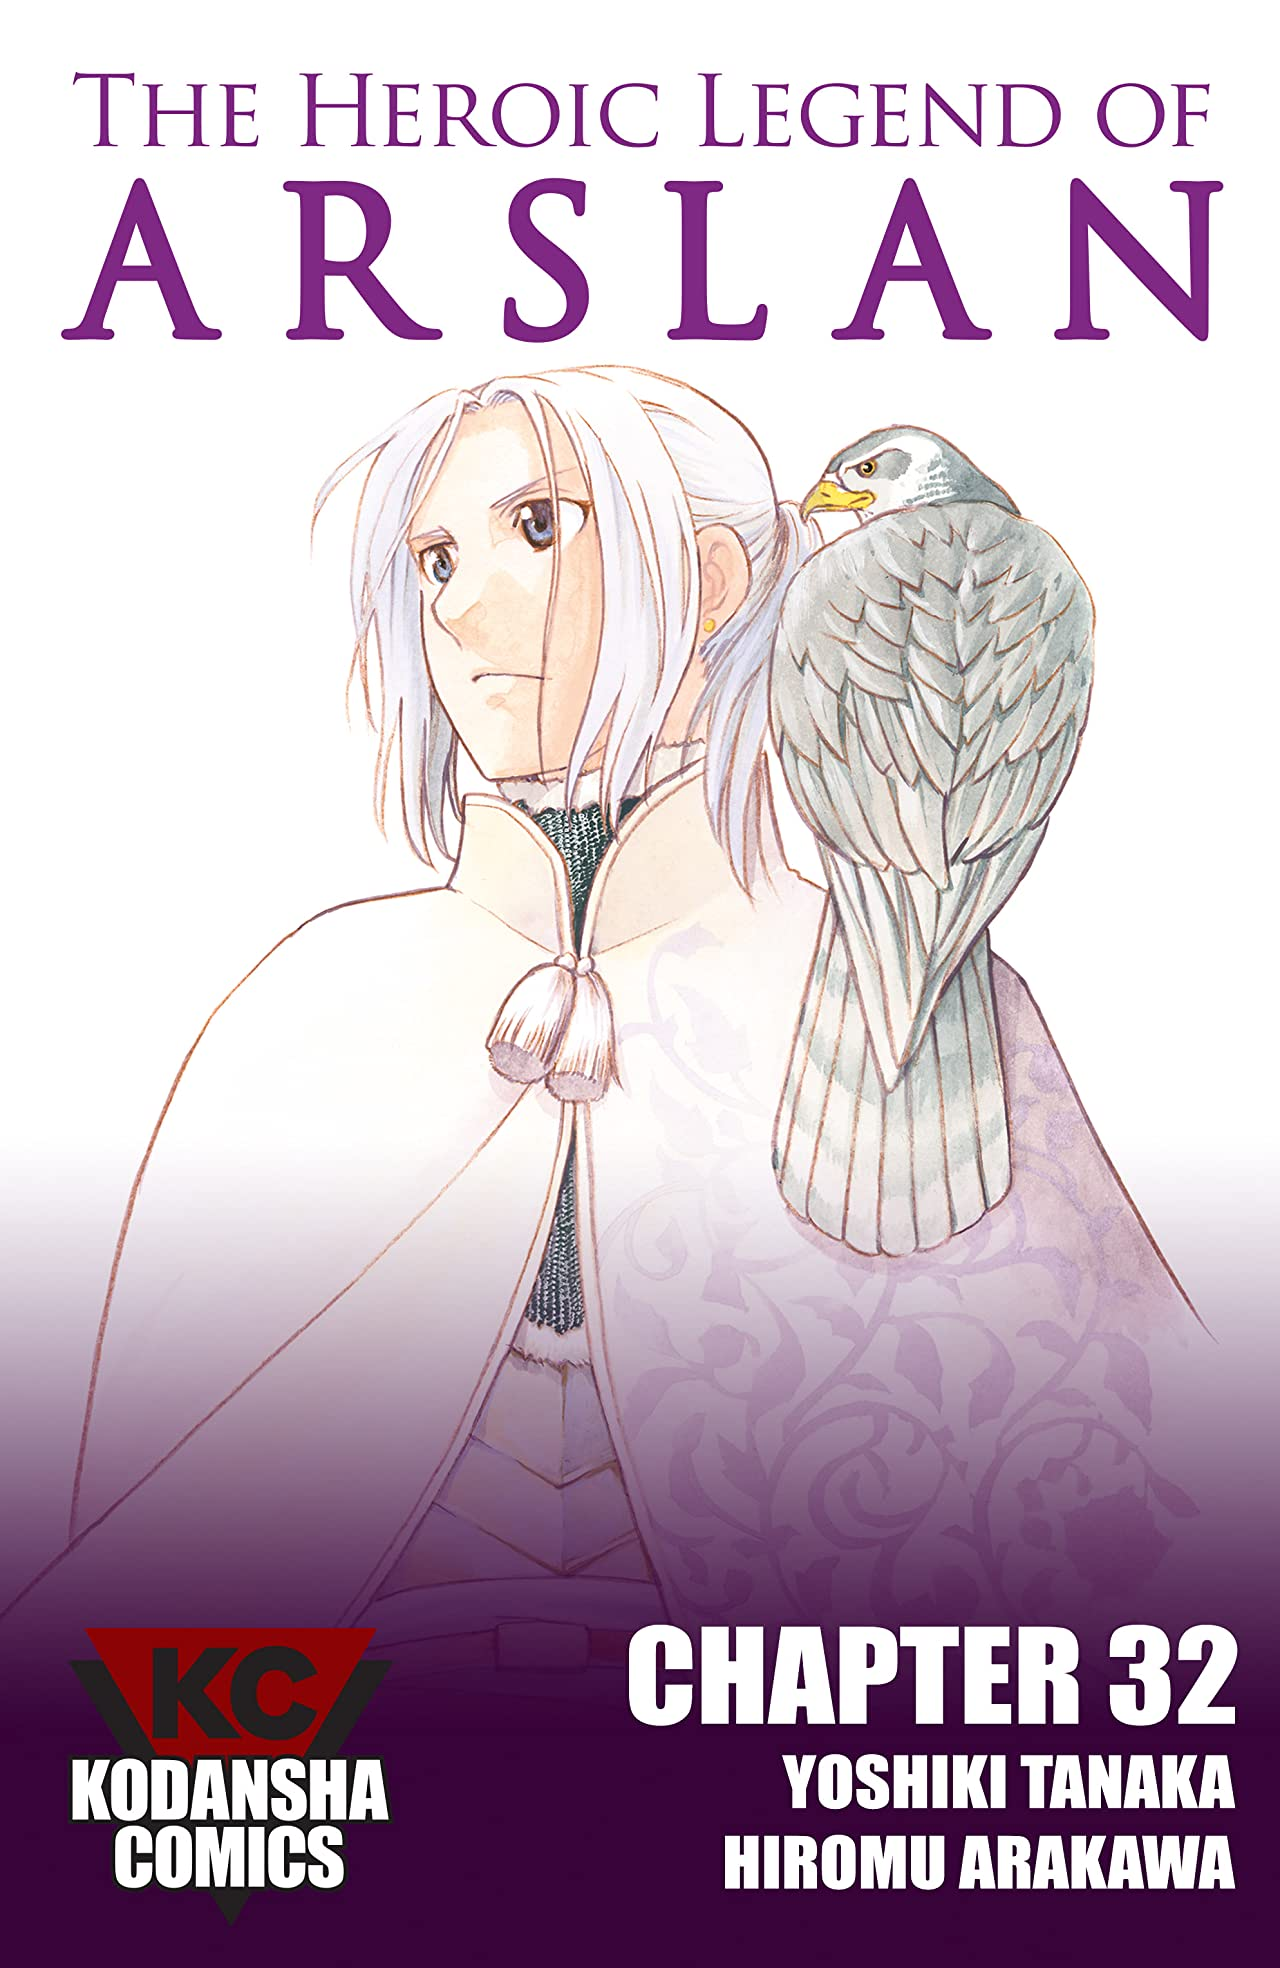 The Heroic Legend of Arslan #32